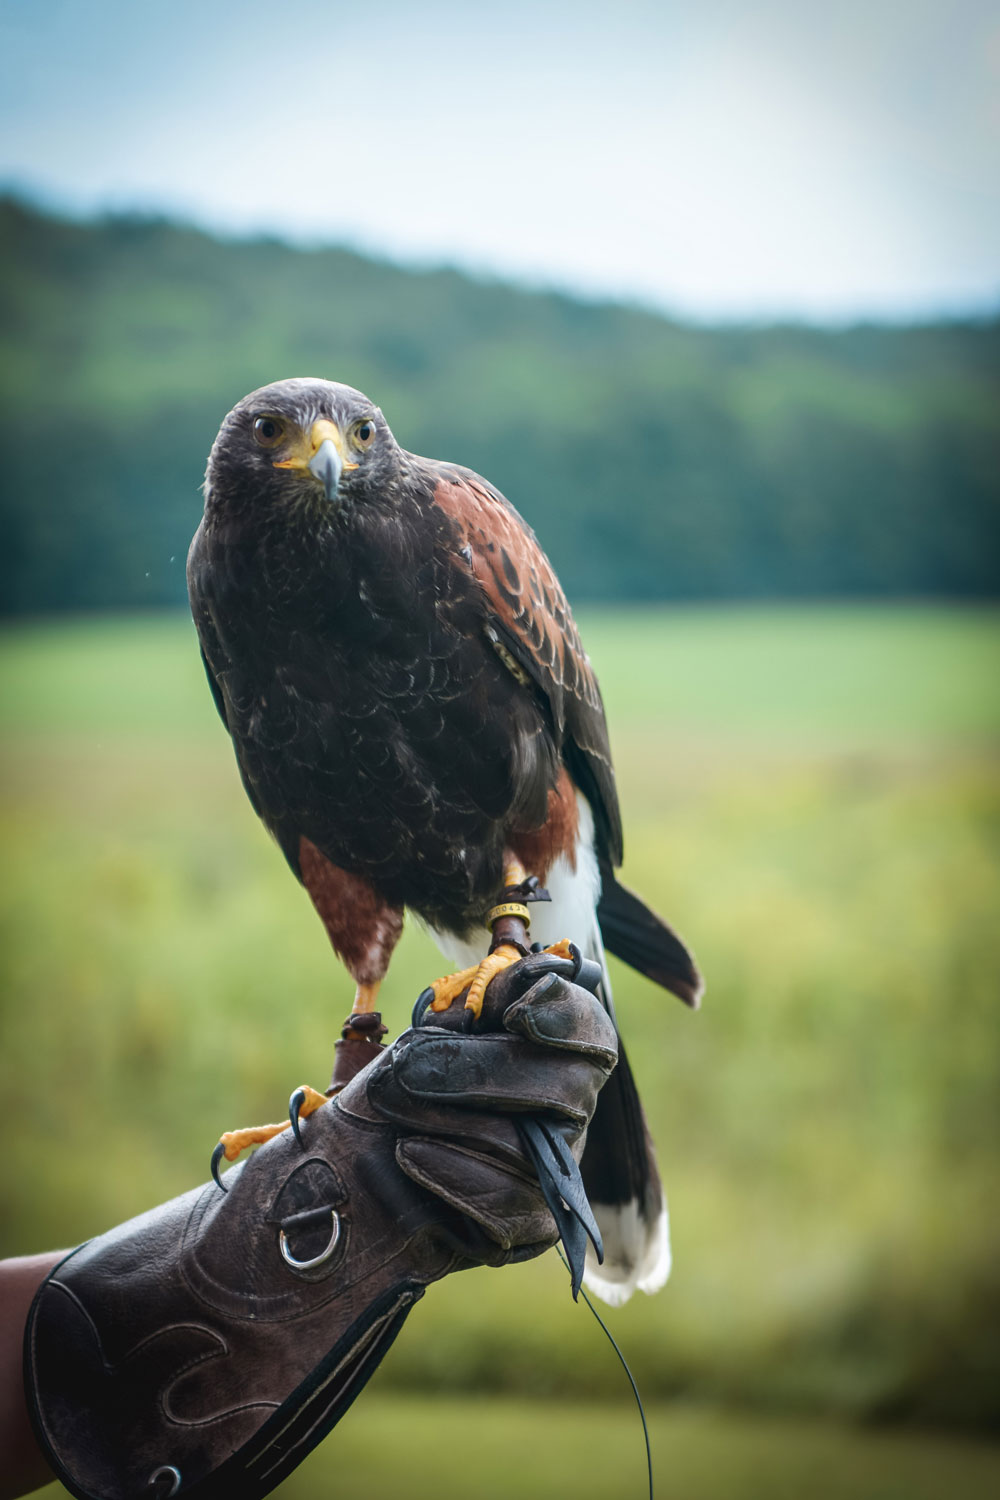 Falconry_1_Weston_Table_September_2018.jpg